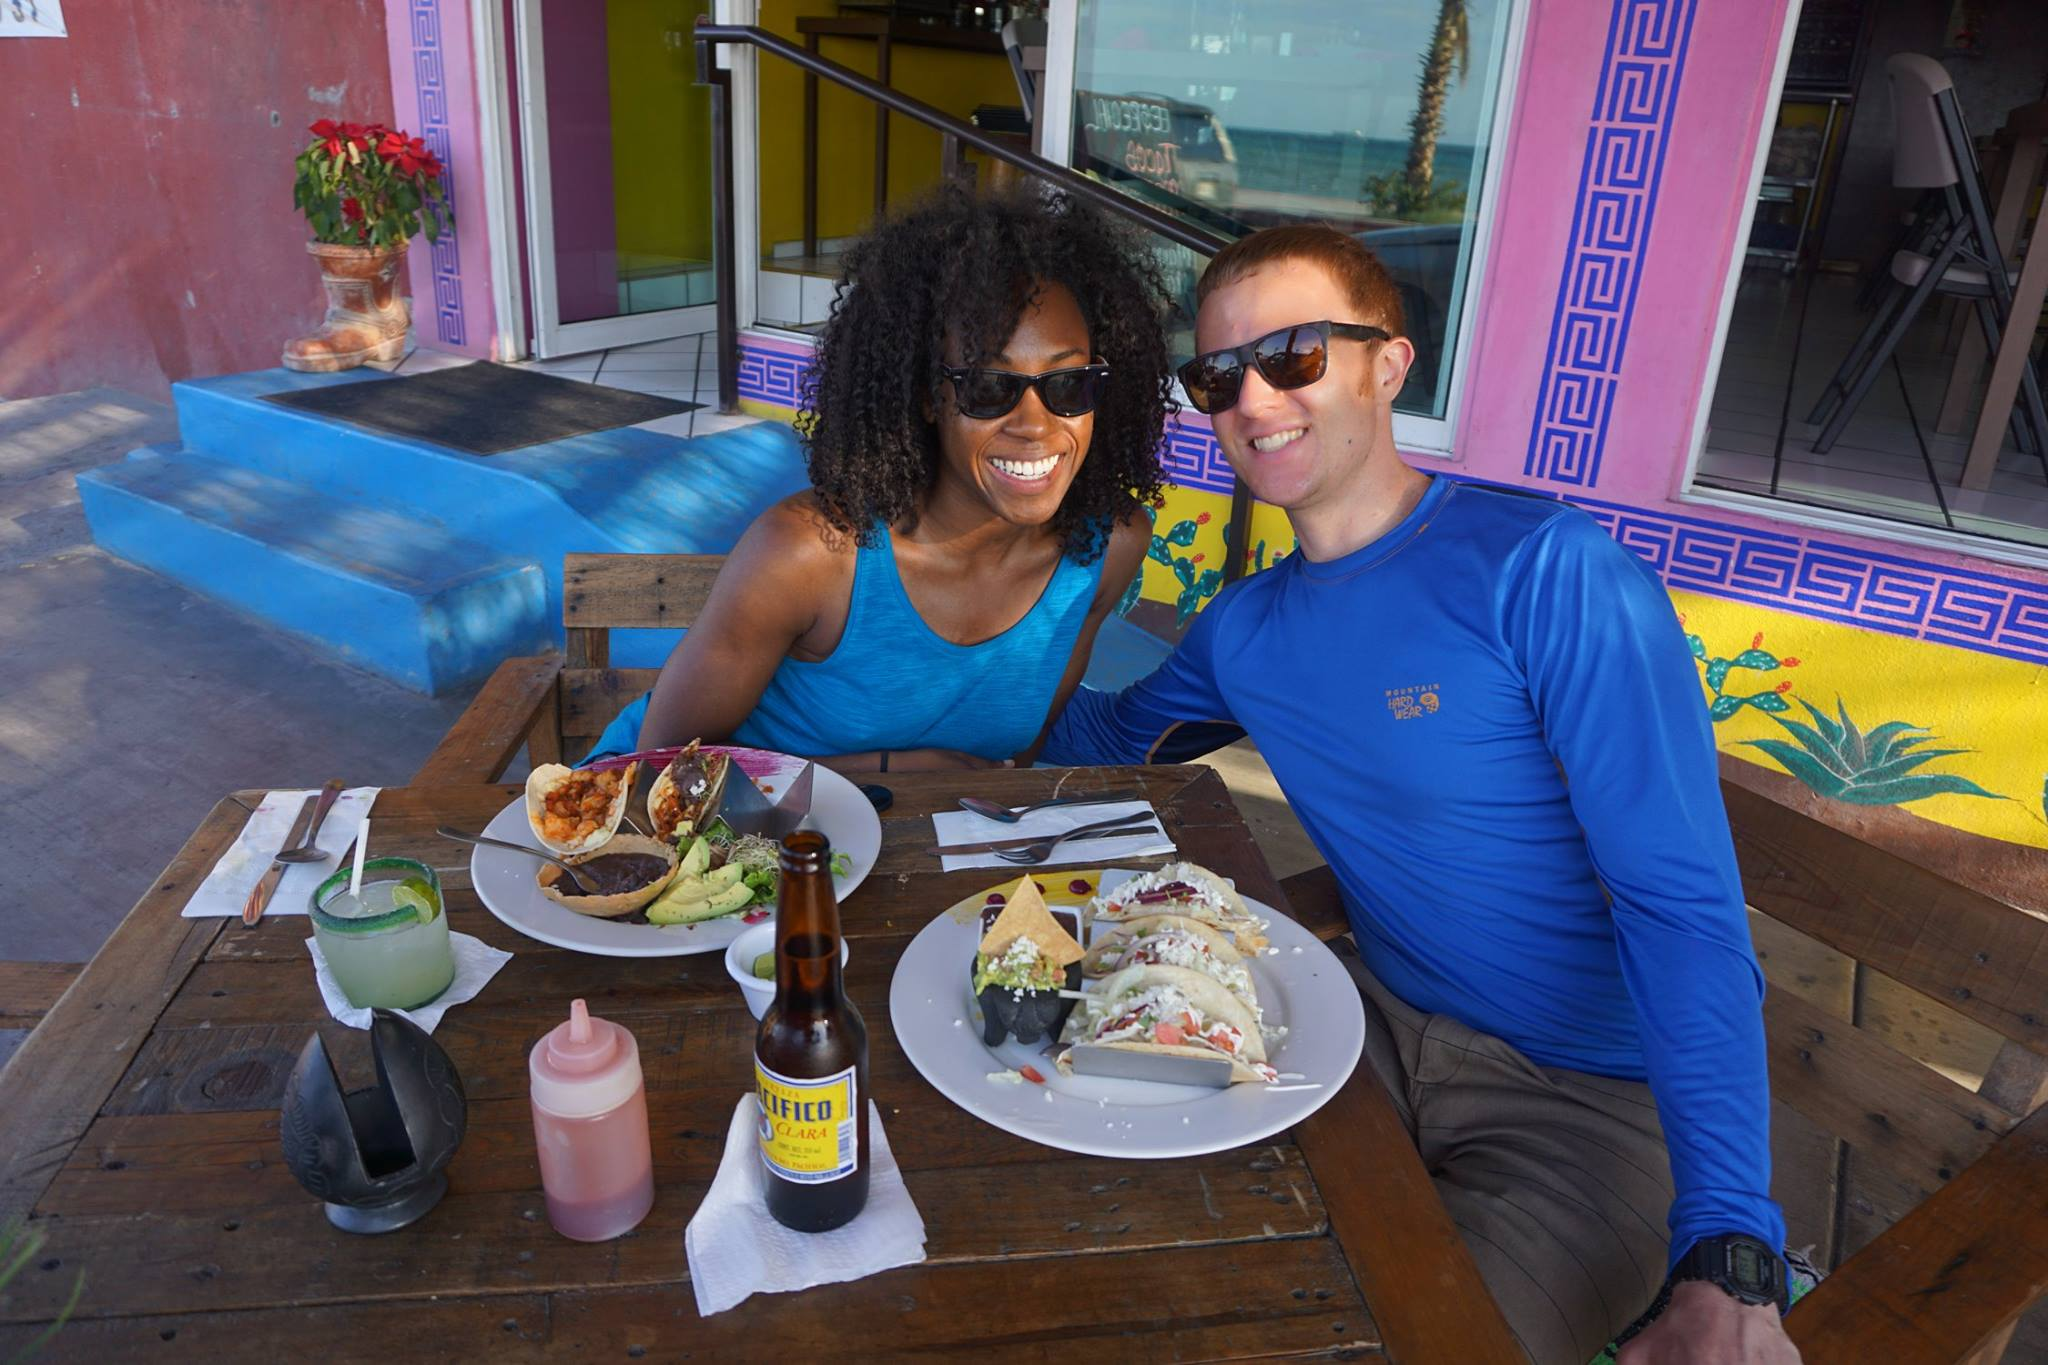 Fun times in La Paz, Mexico. The locals are so awesome and the food is AMAZING!